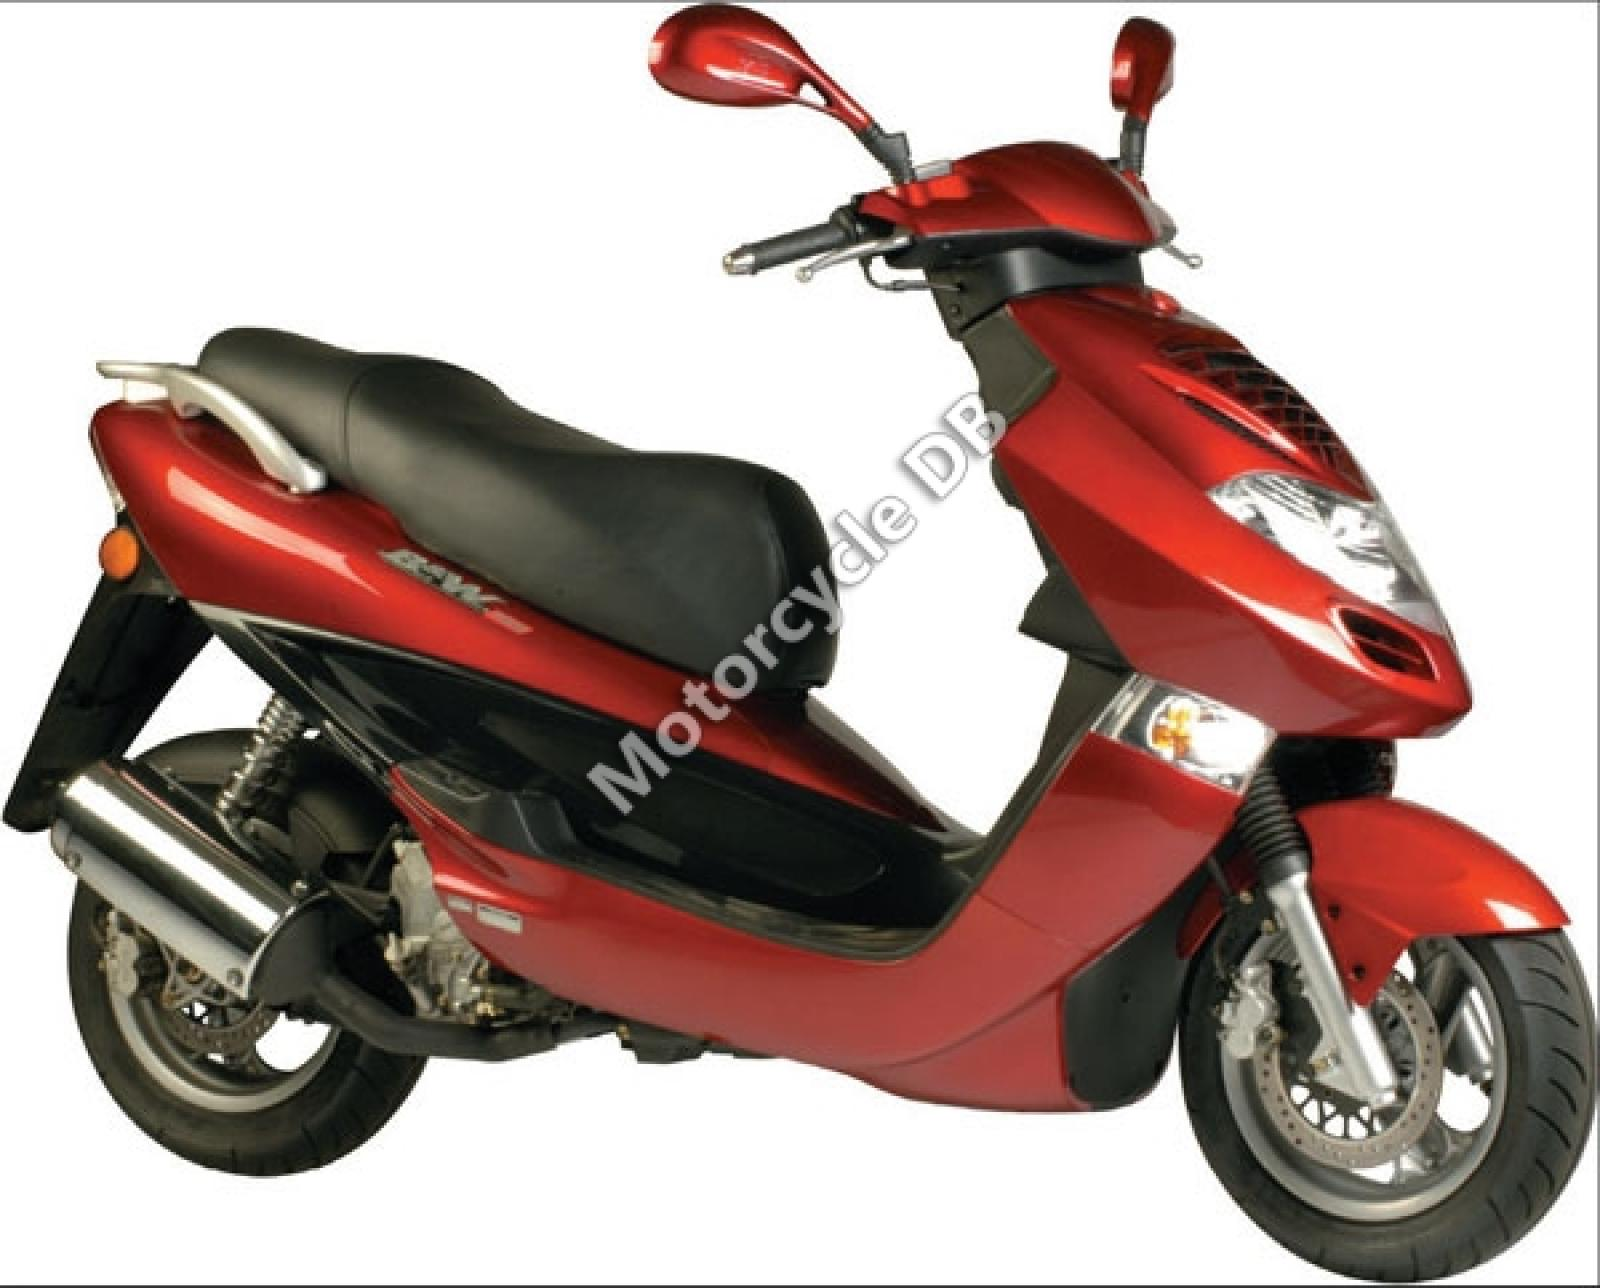 2007 Kymco Bet and Win 125 #4